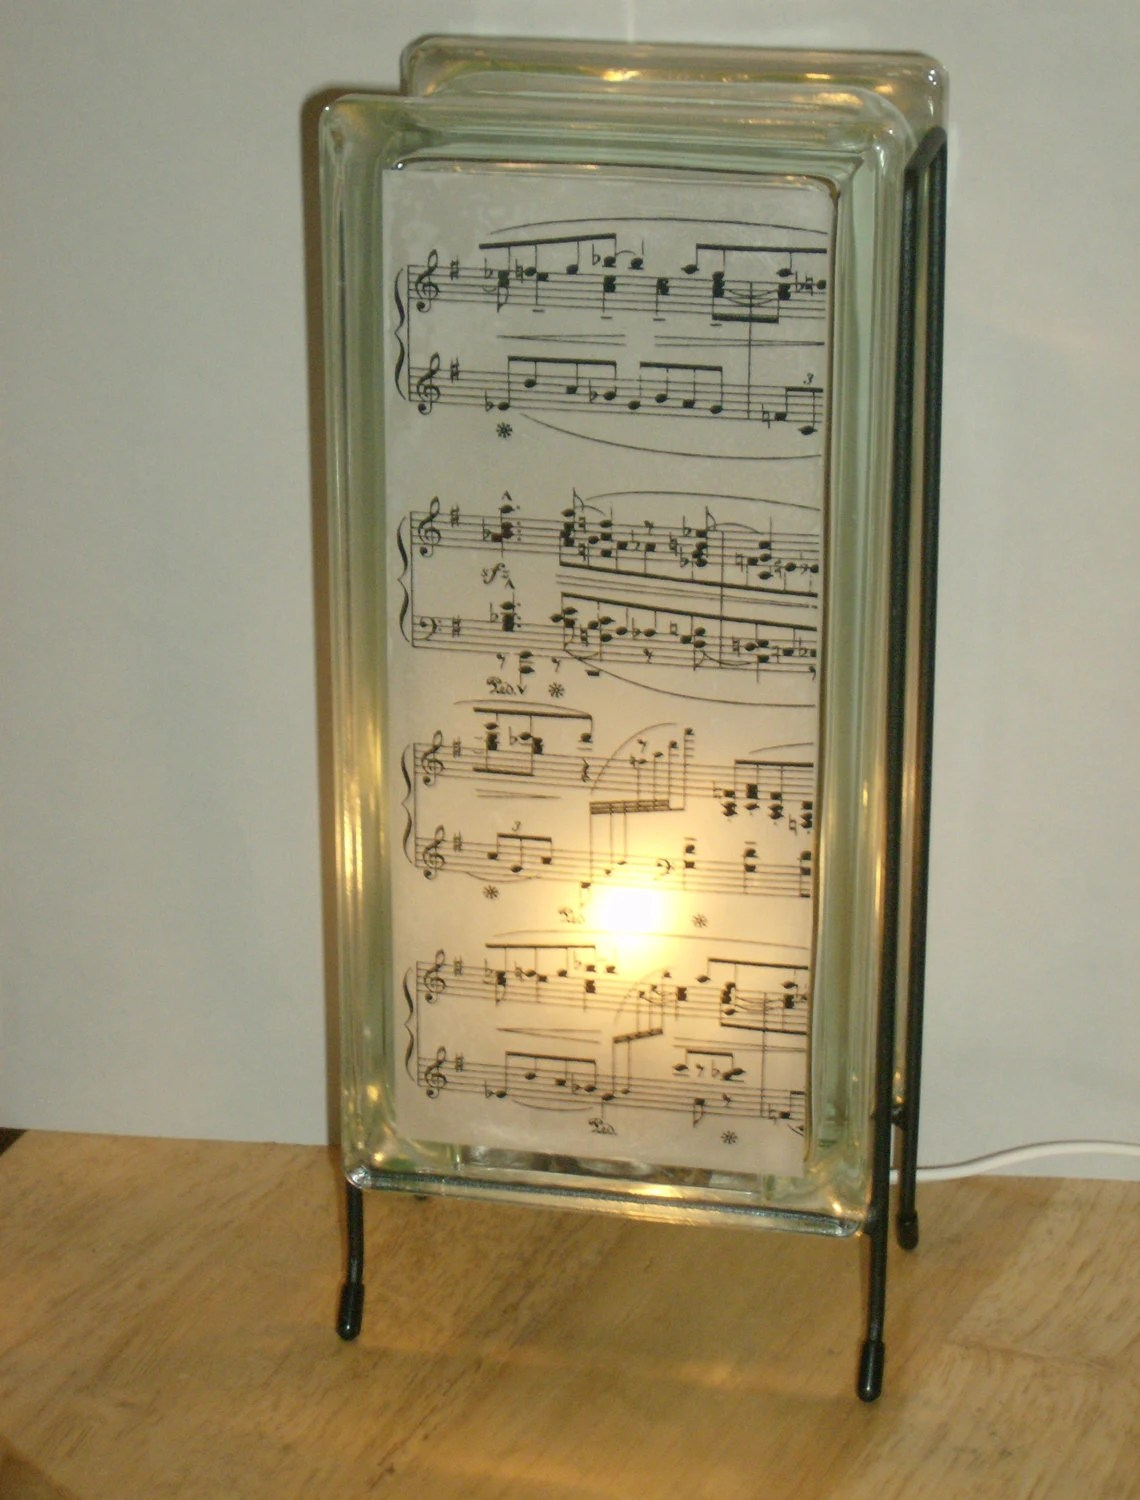 Eco Friendly Night Light Music Score Lamp Upcycled Handmade Glass Block Lamp By